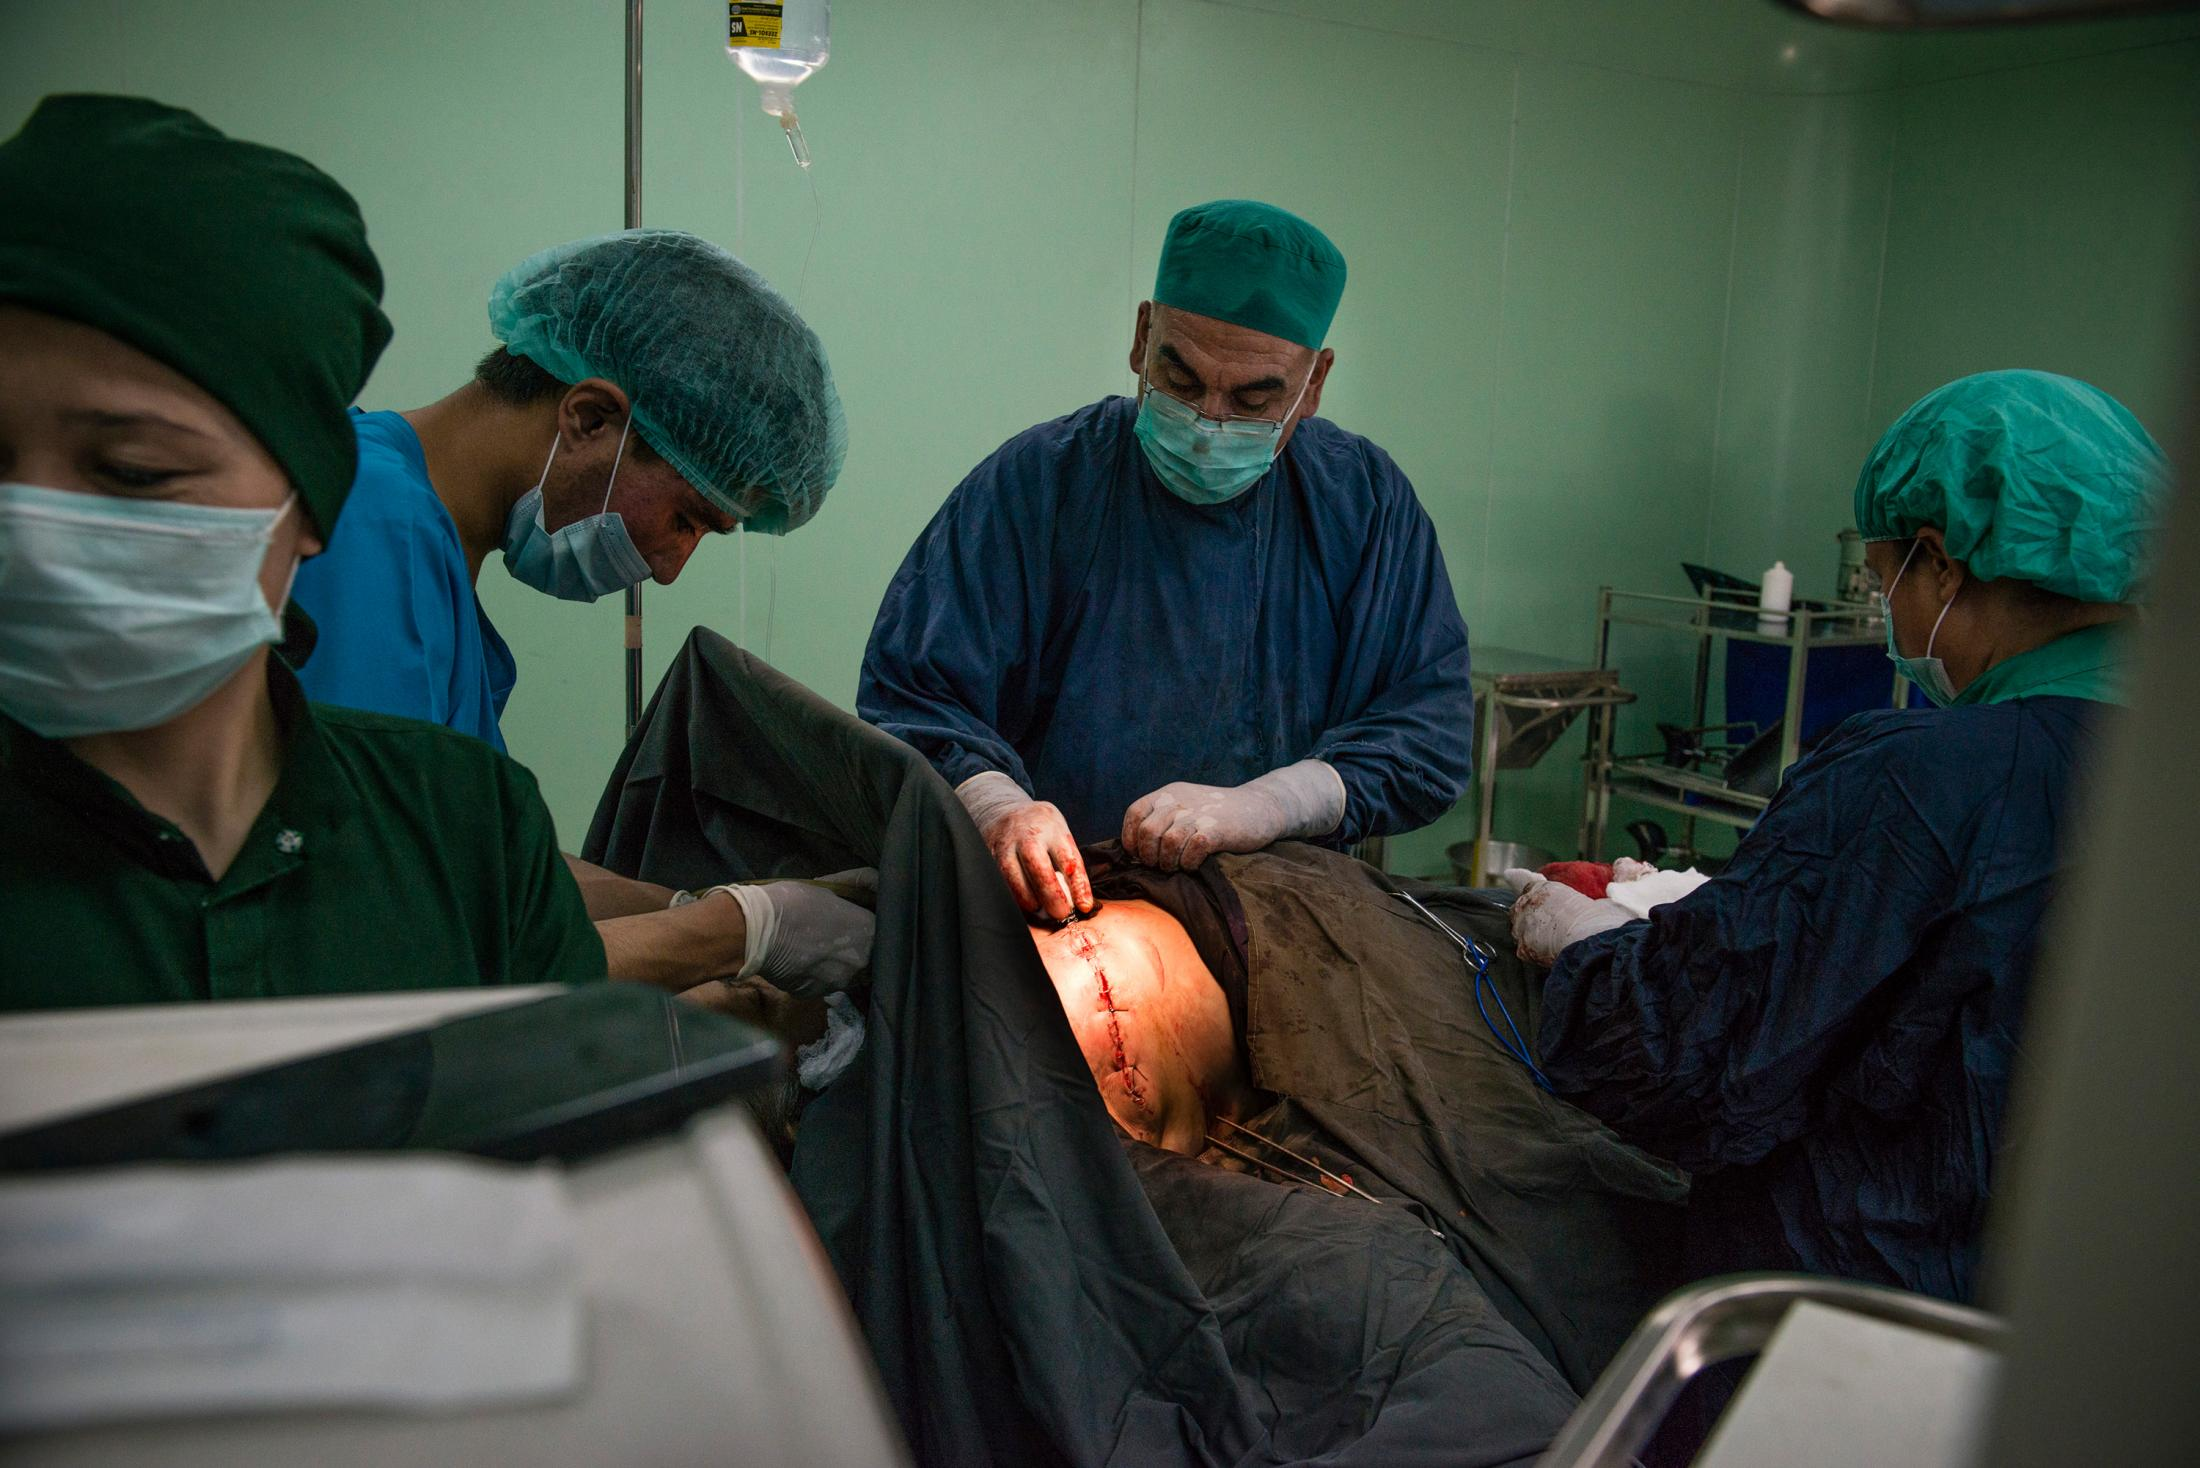 KABUL, AFGHANISTAN | 2017-07-12: Dr Hazeen and Dr Nafissa put on stitches after performing a mastectomy on a breast cancer patient, 72-year-old Shafiqa, inside Jumhuriat Hospital. The operation alone cost 10,000 afs (about $165) which is very costly for average Afghans. Her son got into an argument with one of the doctors and said she is too old and doesn't worth 10,000 afs before walking out of the waiting room.